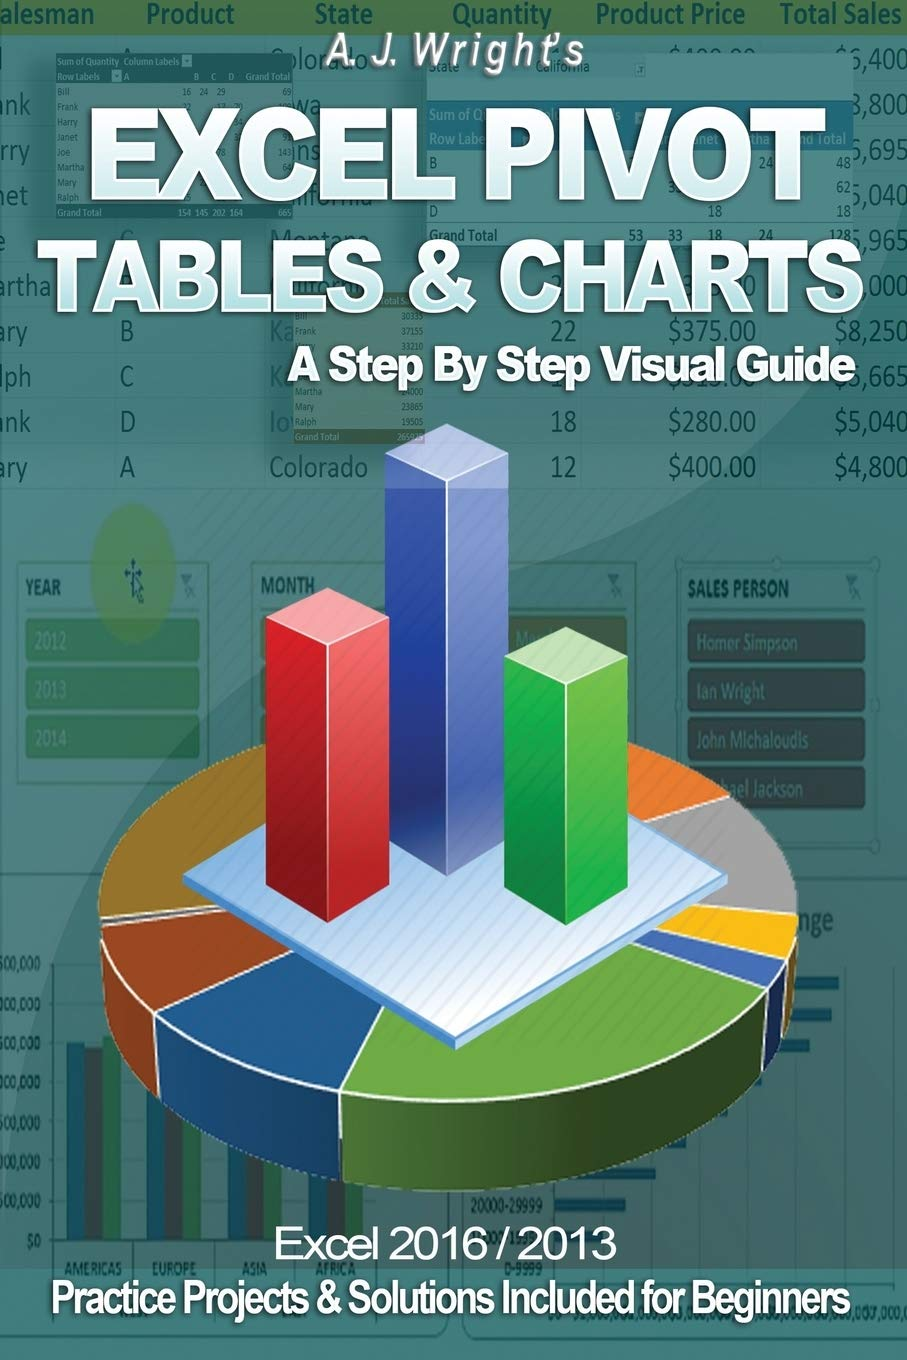 Excel Pivot Tables & Charts: A Step By Step Visual Guide